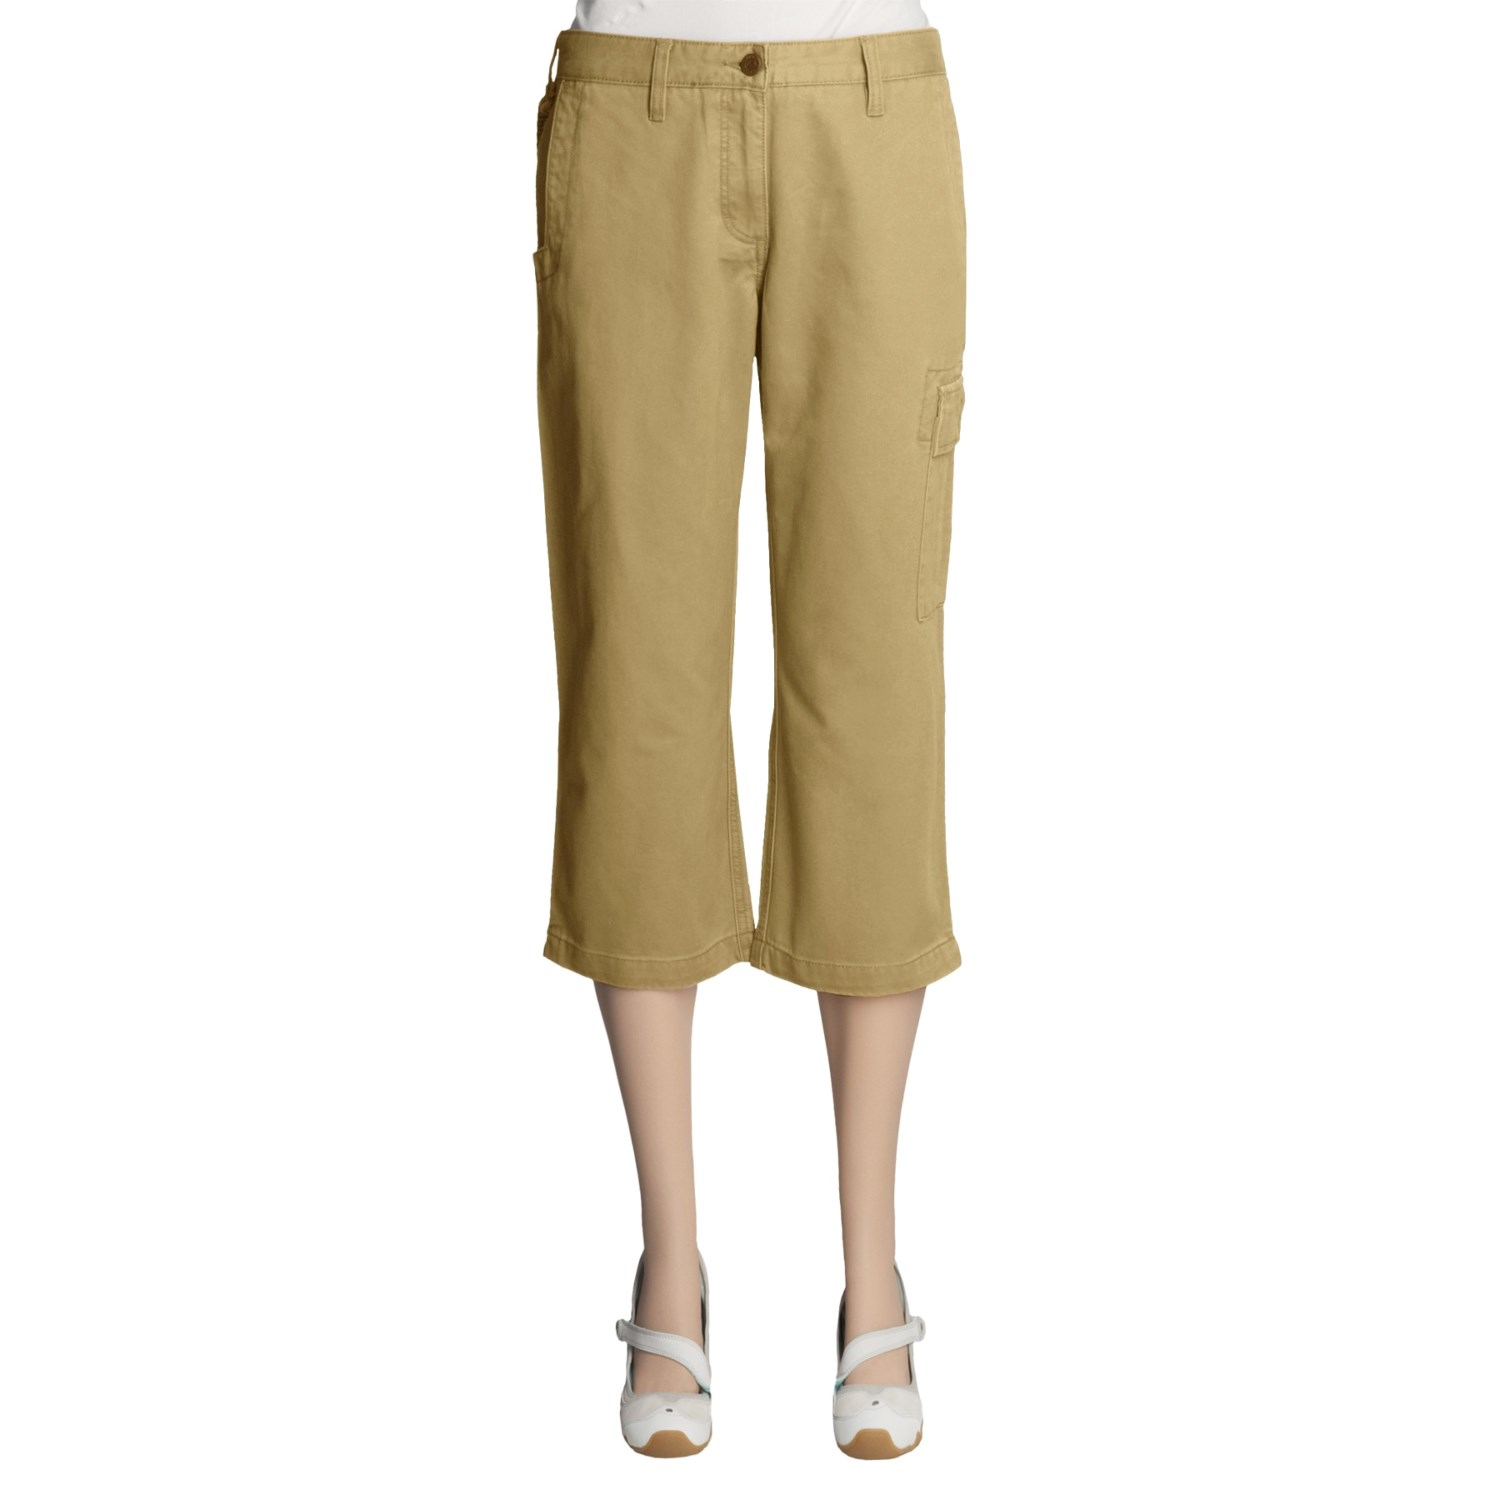 Brilliant Khaki Cargo Pants Women